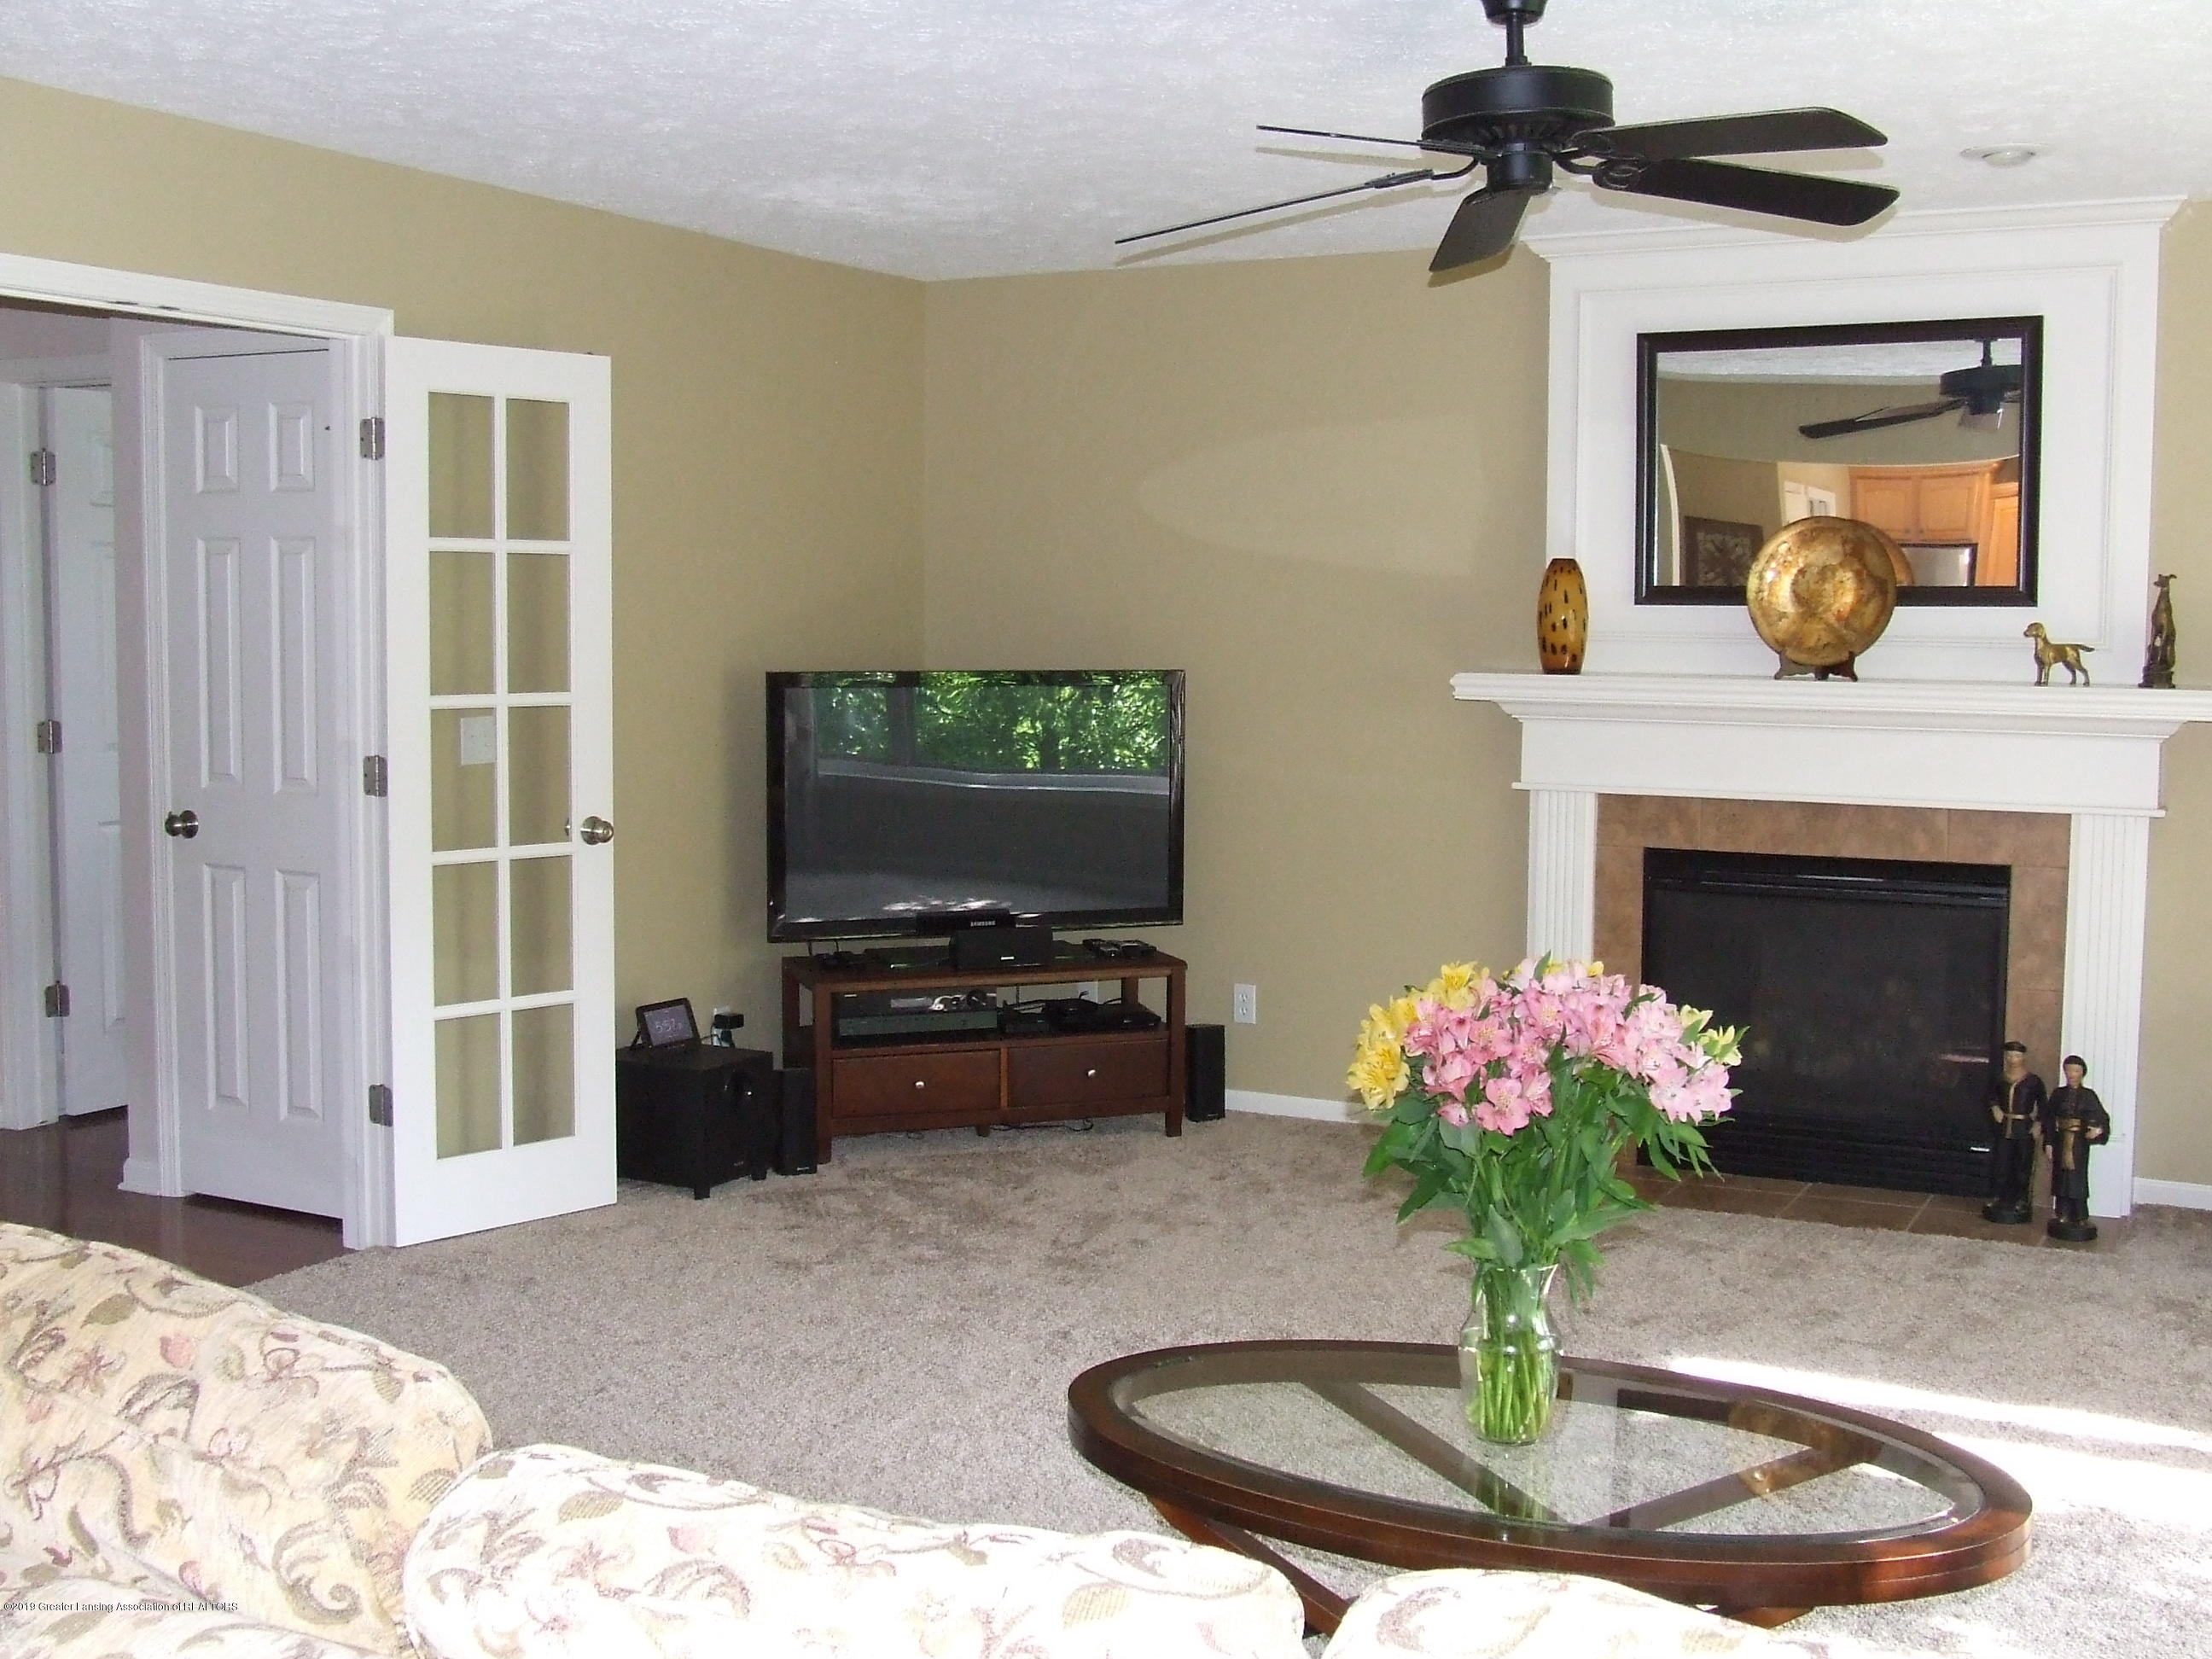 11587 Gold Fields Dr - Living room with fireplace - 6